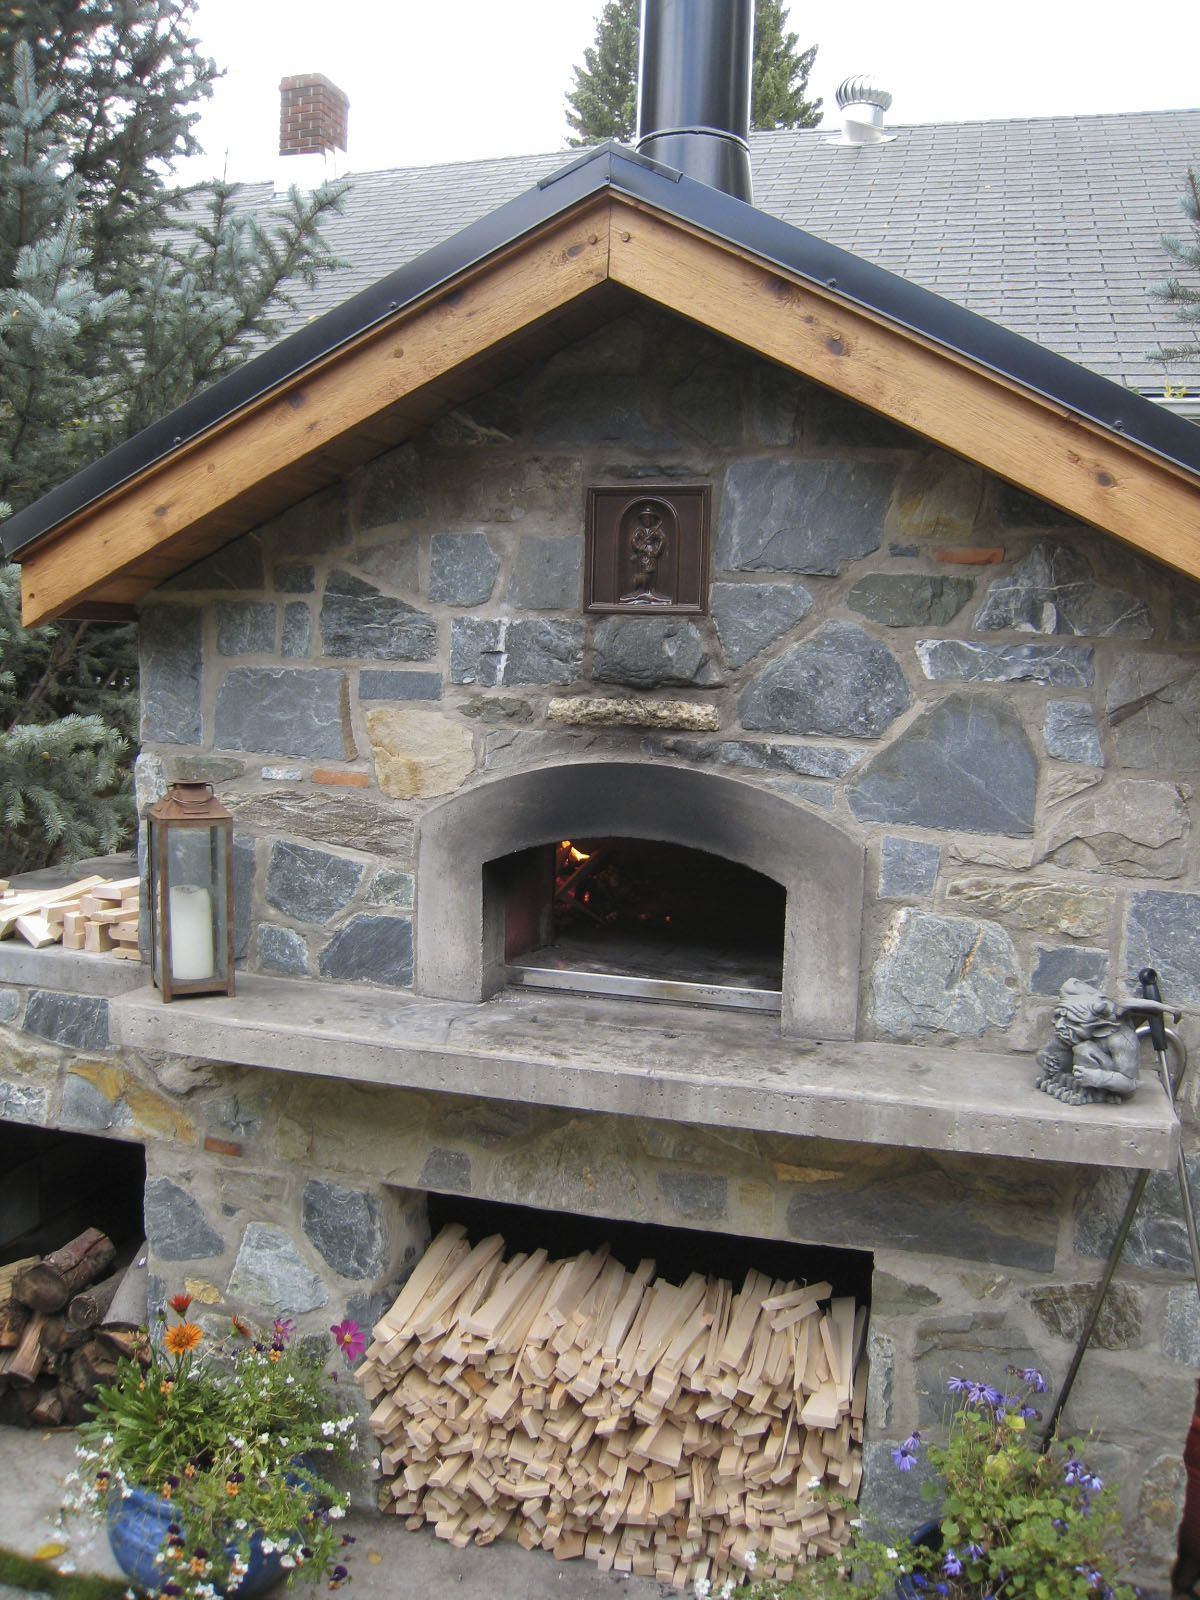 Outdoor Kitchen Selber Bauen Wood Fired Oven | Marilyn's Blog: Wood Fired Pizza And